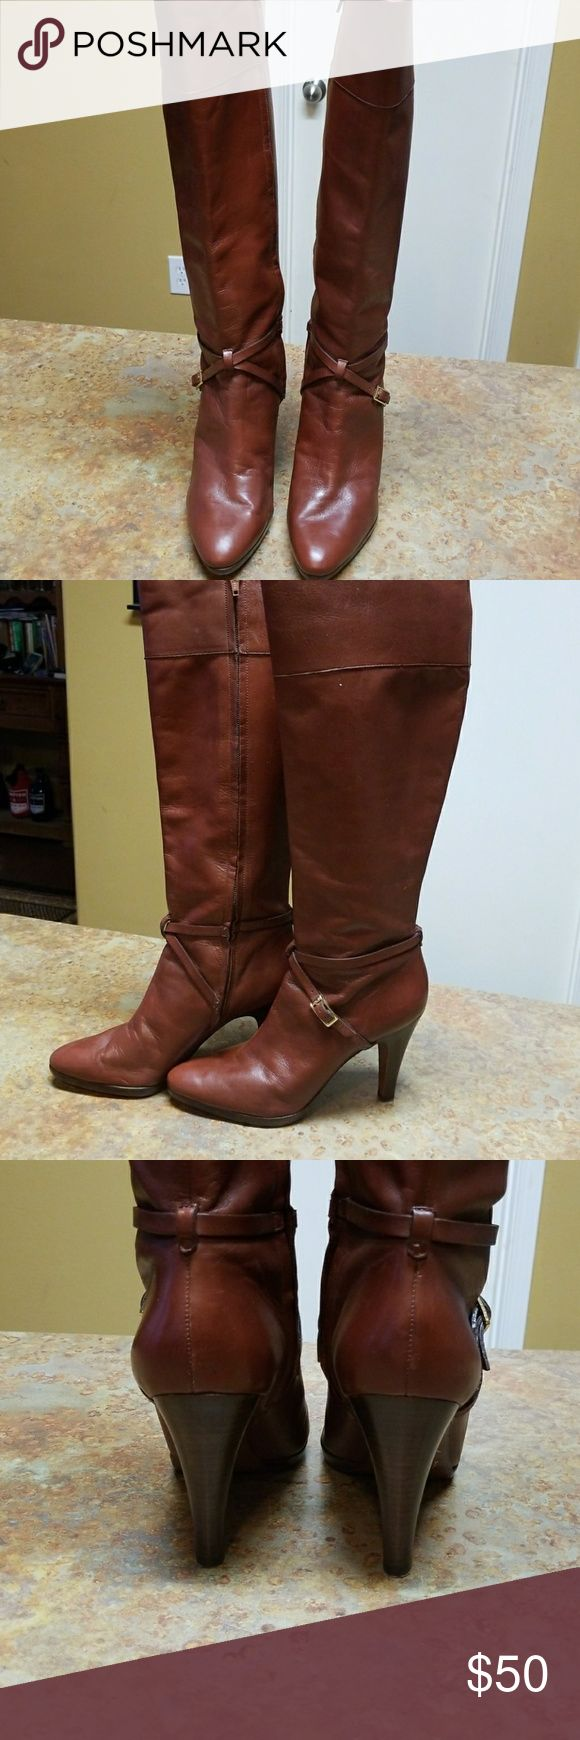 Banana Republic boots Beautiful dress knee boot.  Rich chestnut color with stacked wood heel, gold buckle ankle detail. Heel caps in tact,  no scrapes, etc. Worn once for a photo.. My loss is your new treasure! Banana Republic Shoes Heeled Boots